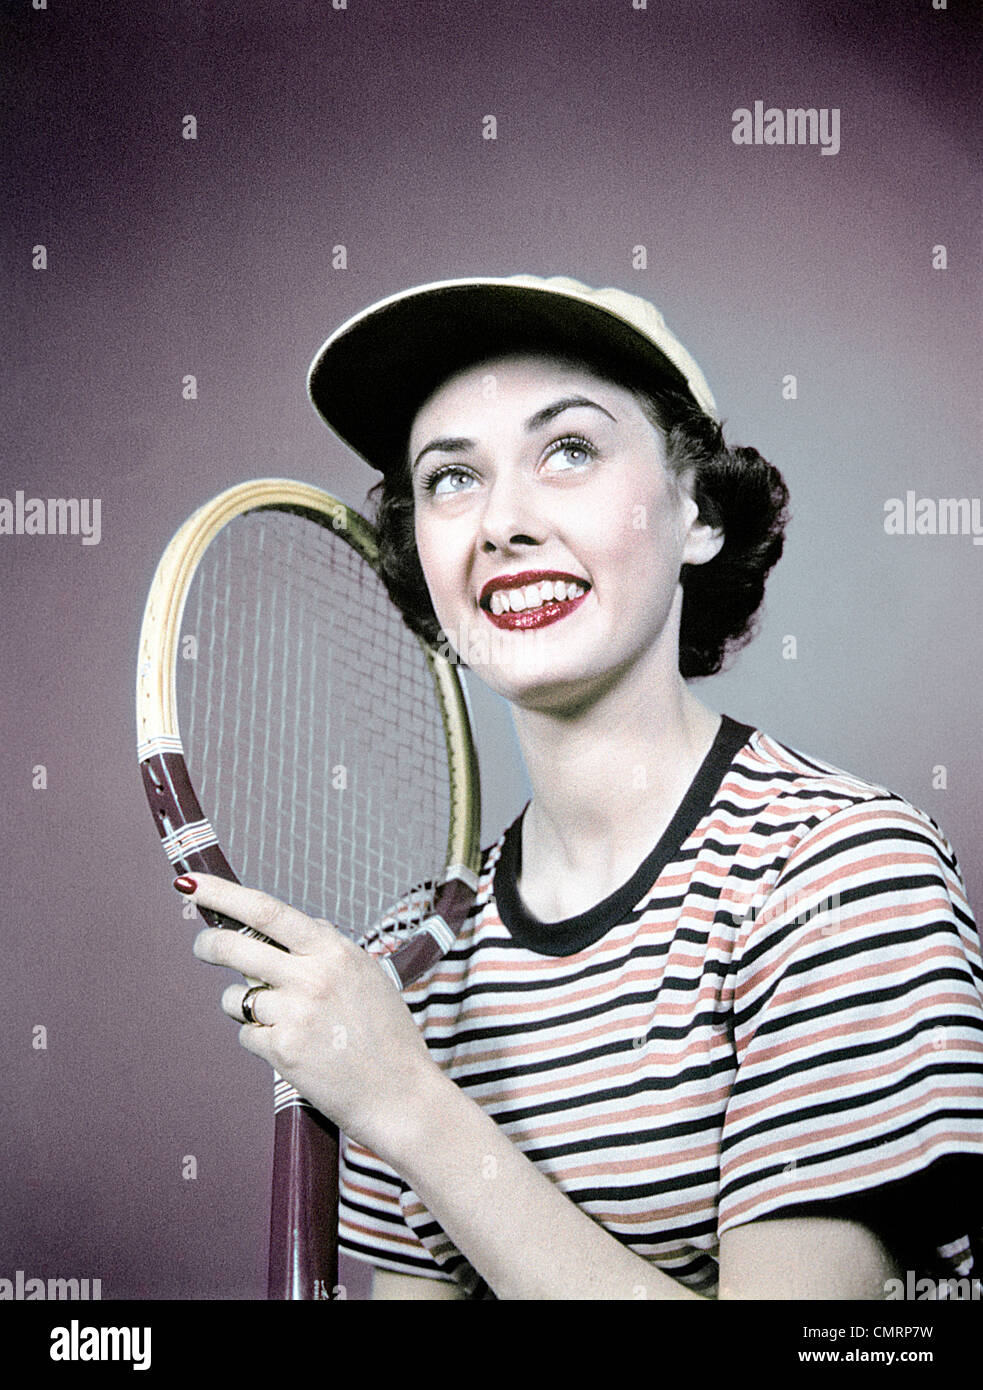 1950s SMILING BRUNETTE WOMAN HOLDING TENNIS RACKET WEAR STRIPED SHIRT CAP - Stock Image